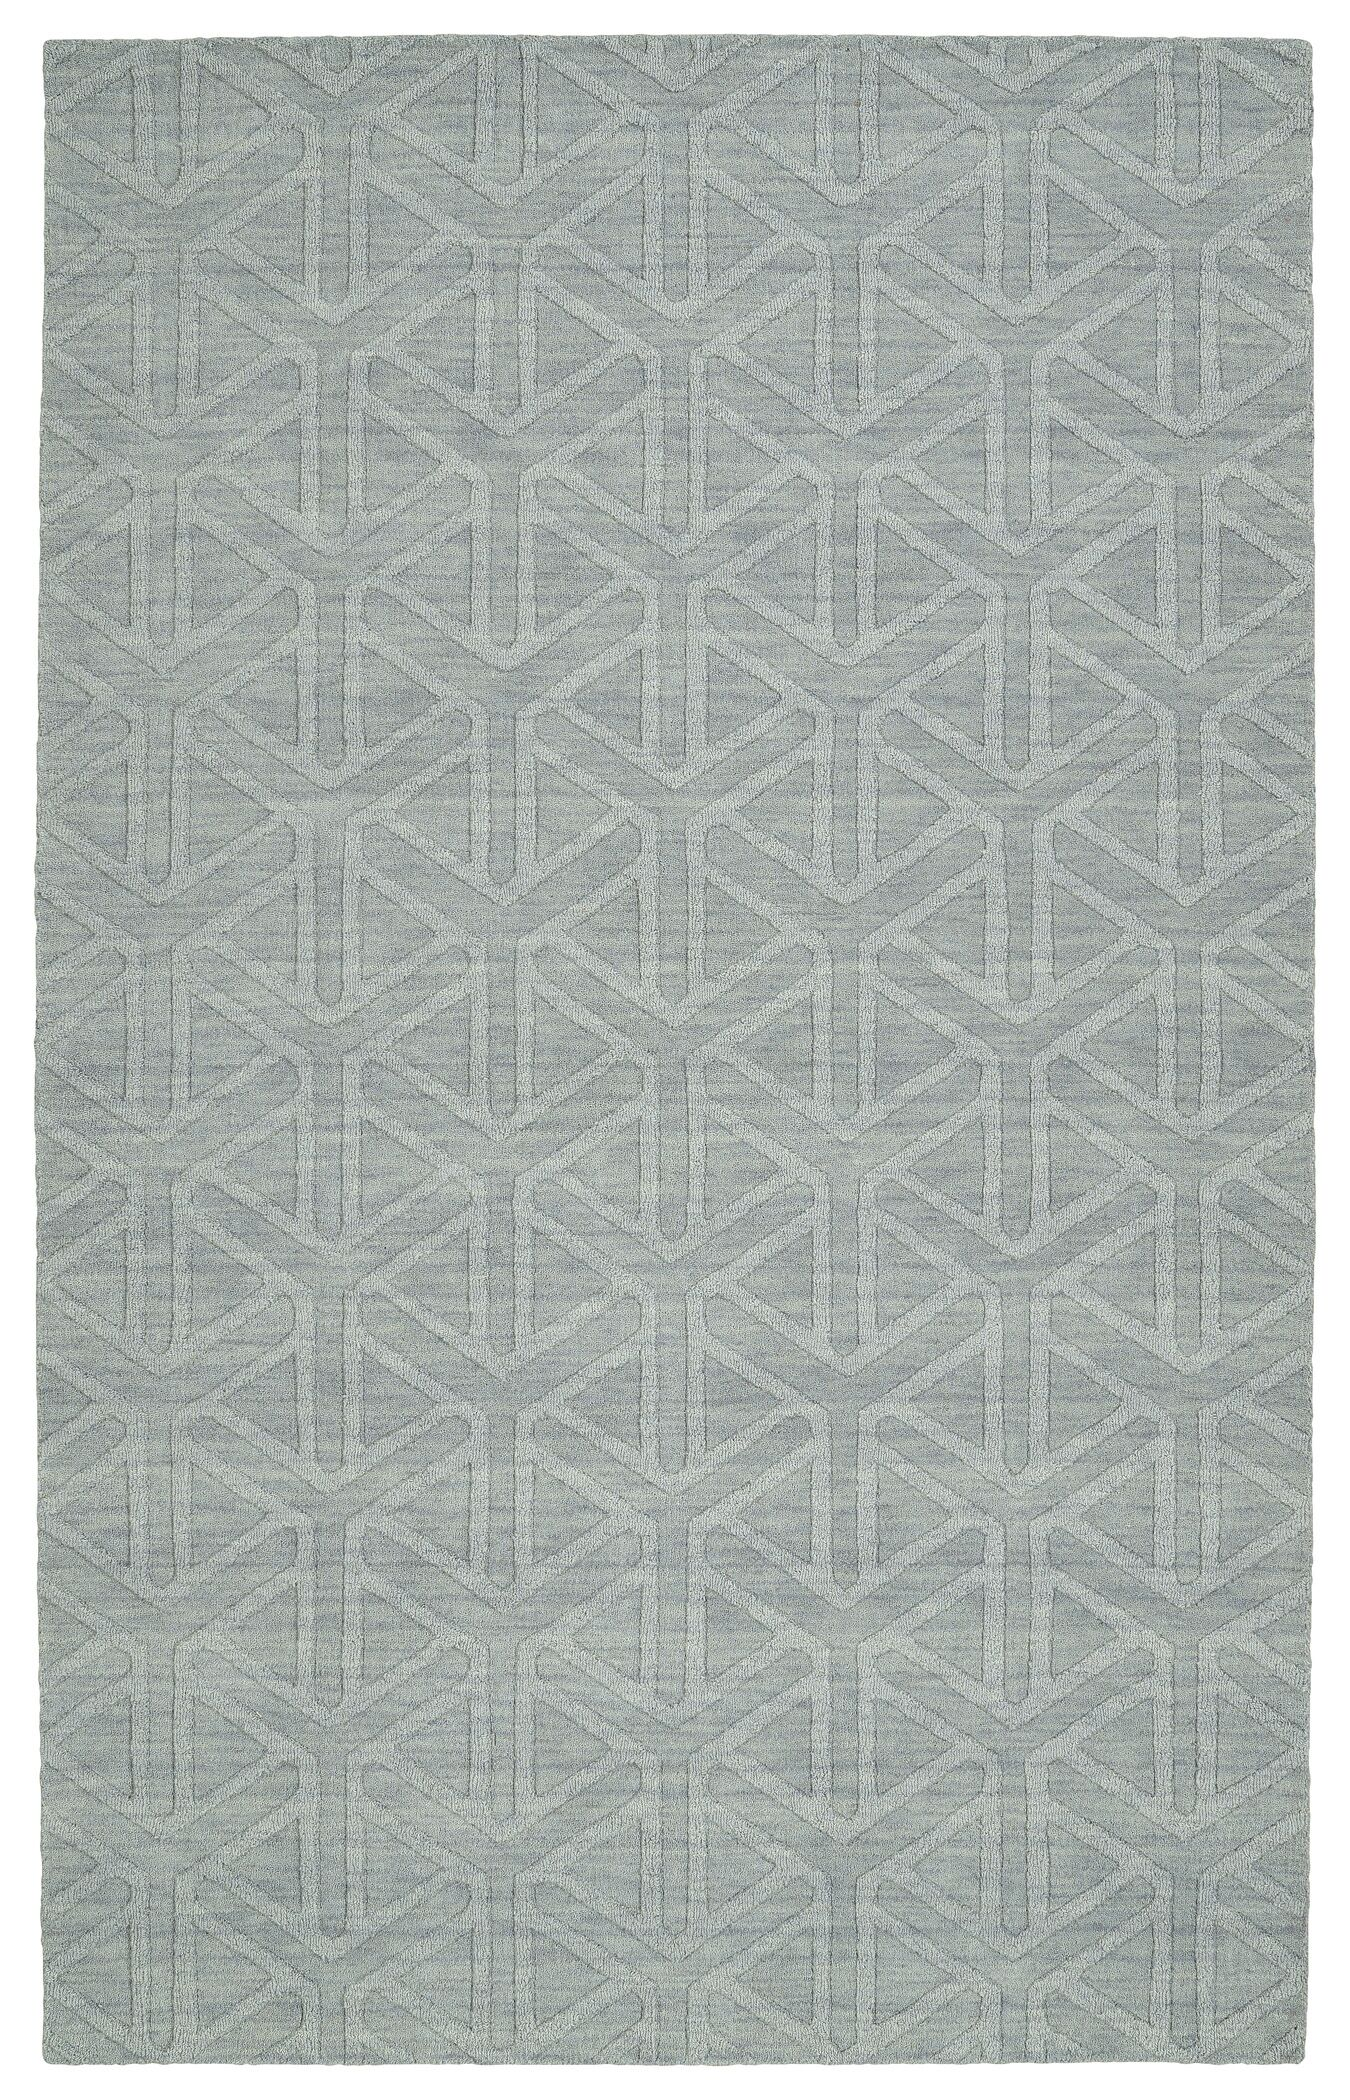 Dobson Handmade Light Blue Area Rug Rug Size: Runner 2'6